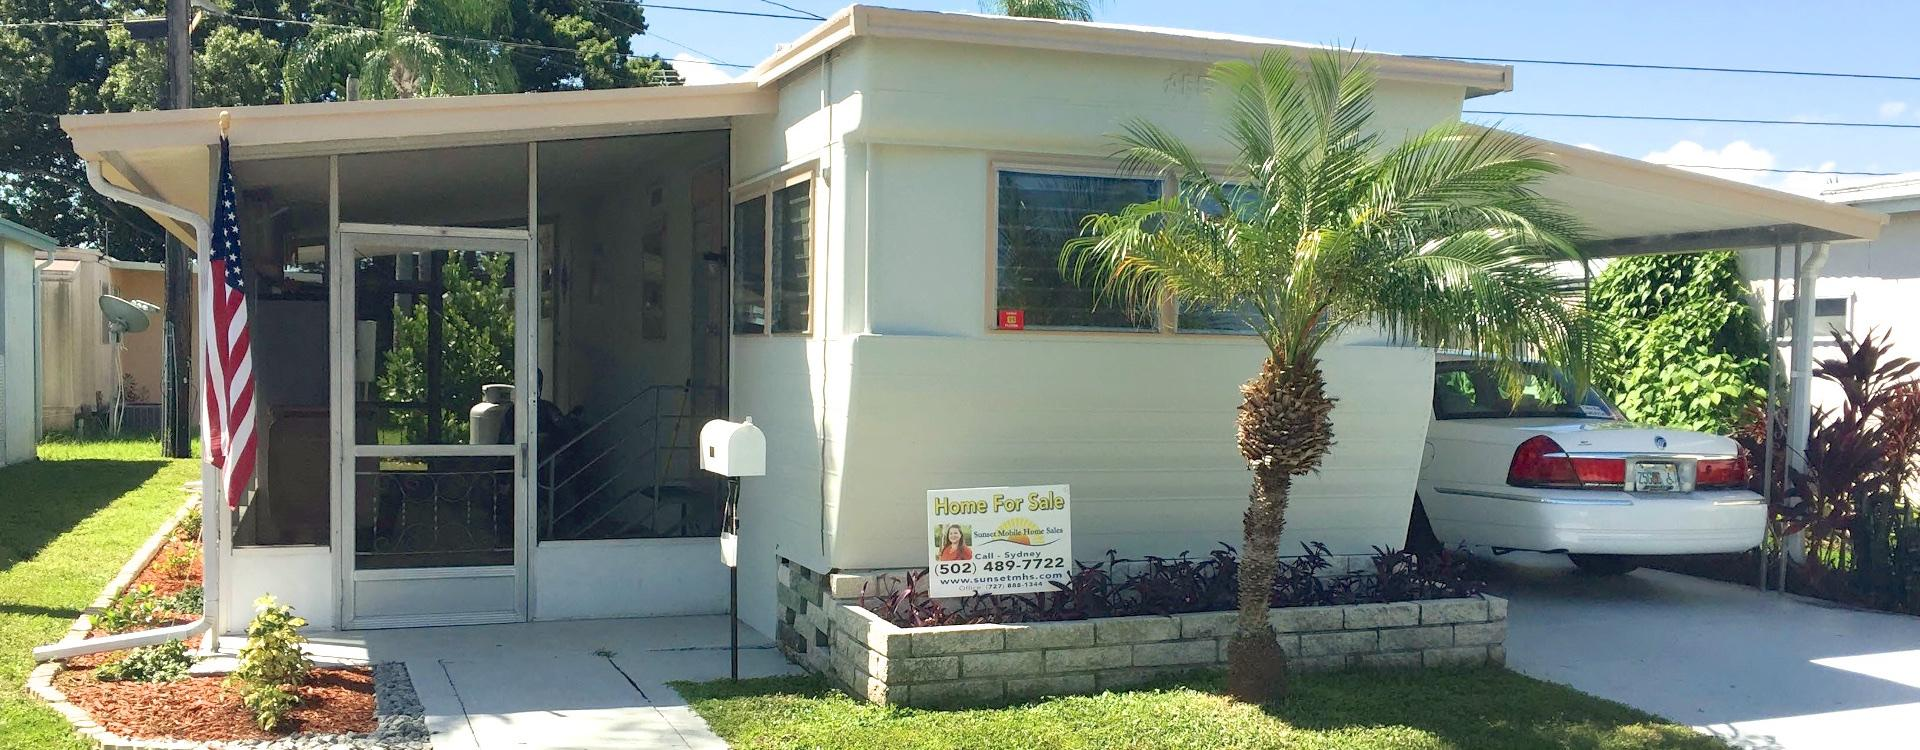 Used-Mobile-Home-For-Sale-201608-002-Wide-2 Pictures Of Twin Lakes Mobile Home Park Clearwater Florida on mobile homes in florida, hotels clearwater florida, dentists clearwater florida, night clubs clearwater florida, capitol theatre clearwater florida, retirement parks in florida, photographers clearwater florida, interior design clearwater florida, mobile home 55 communities florida, credit unions clearwater florida, golf courses clearwater florida, trailer parks in florida, tanning salons clearwater florida, real estate clearwater florida,